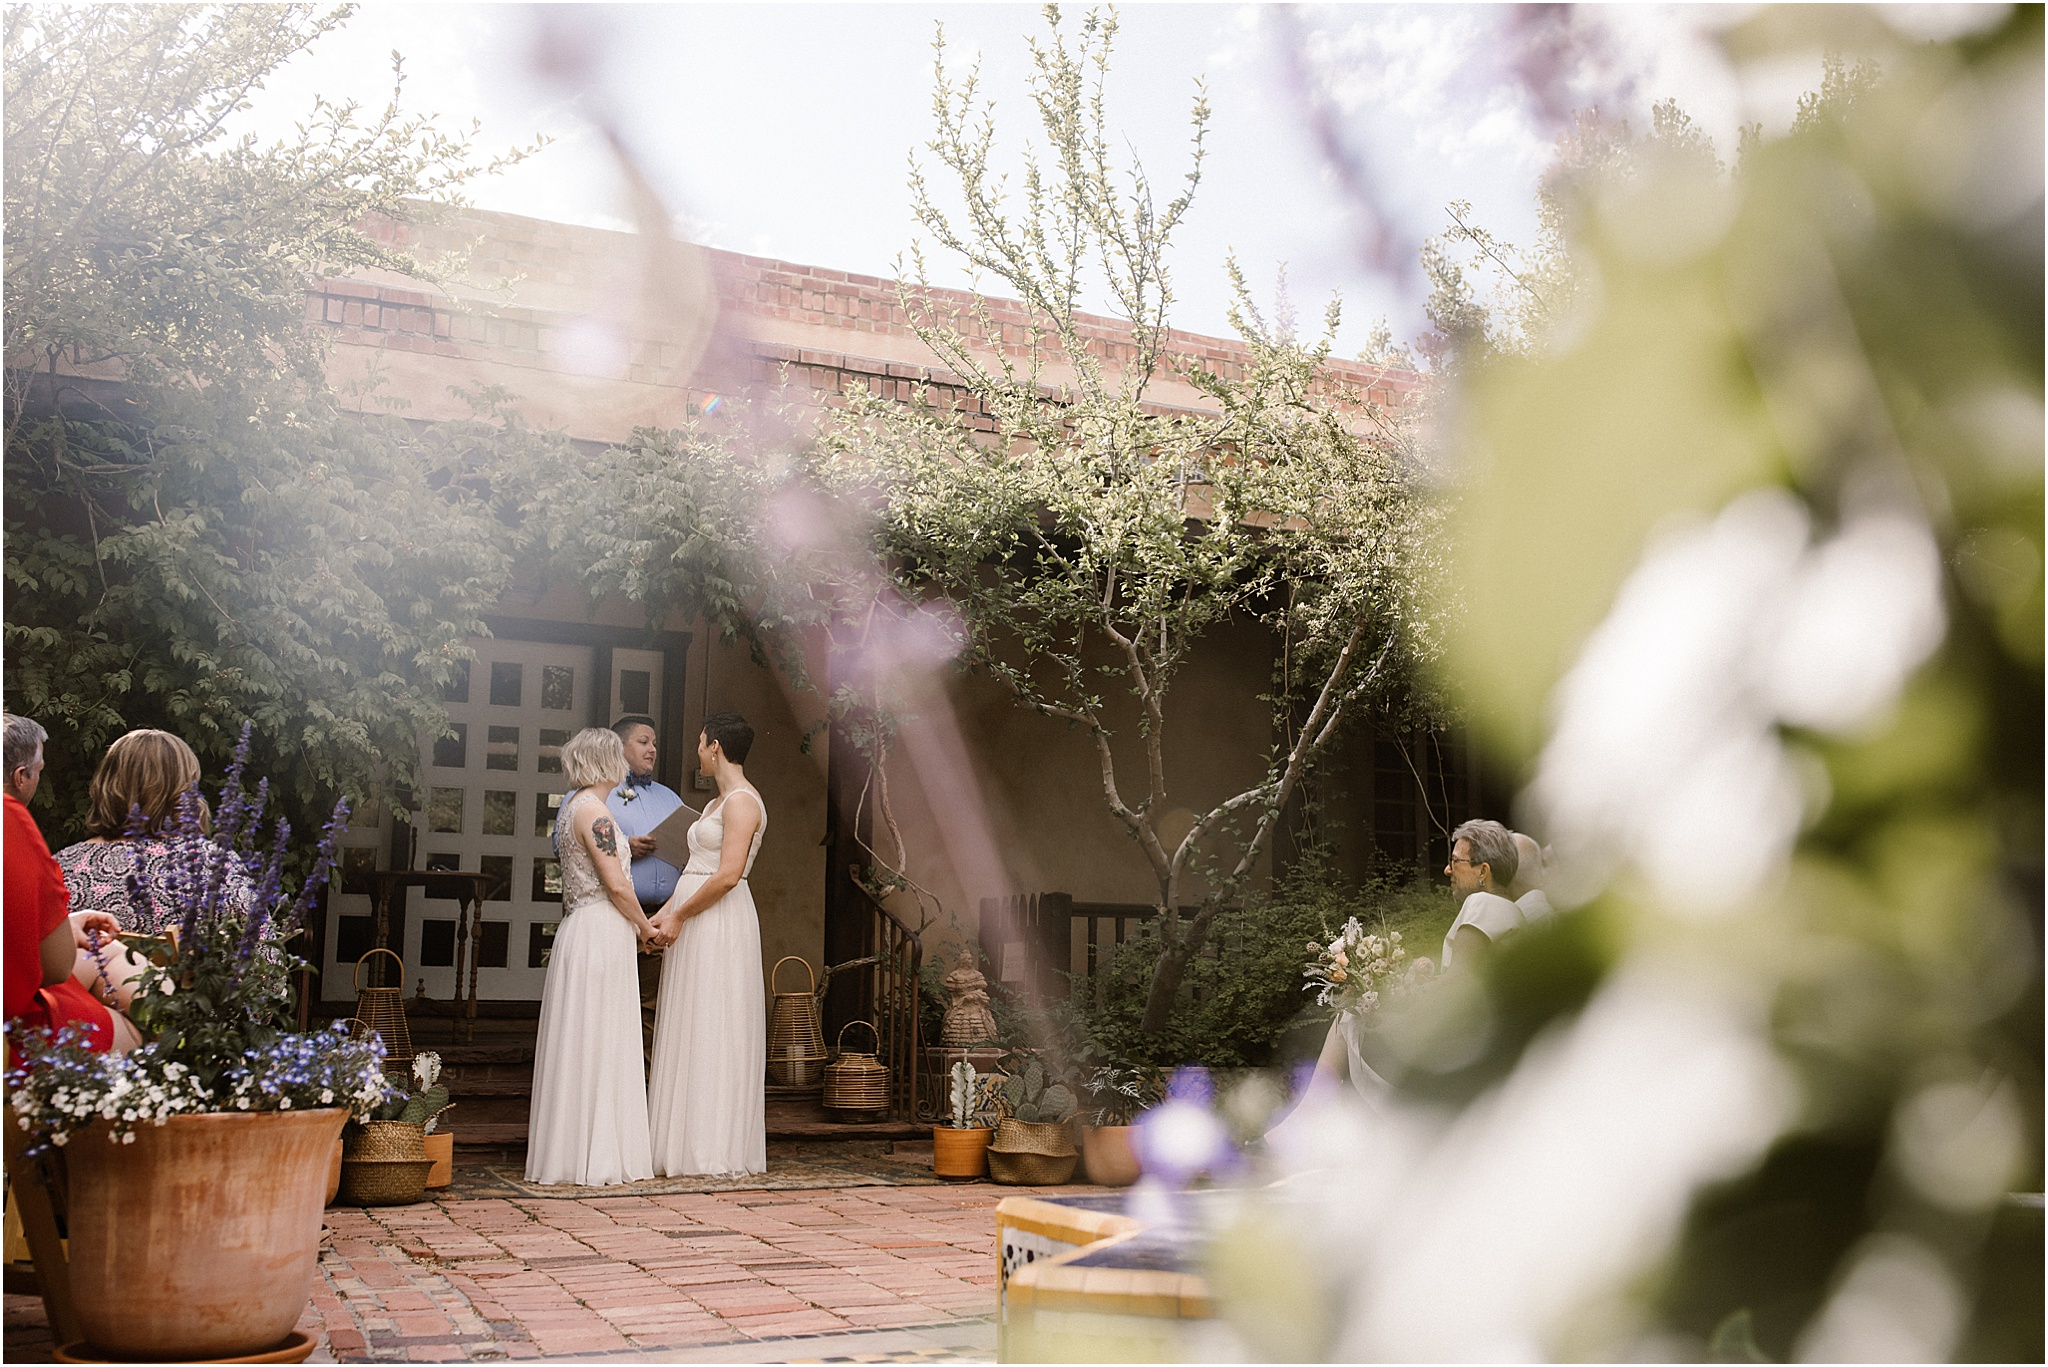 Kelly_Lisa_Los Poblanos_Wedding_Blue Rose Photography95